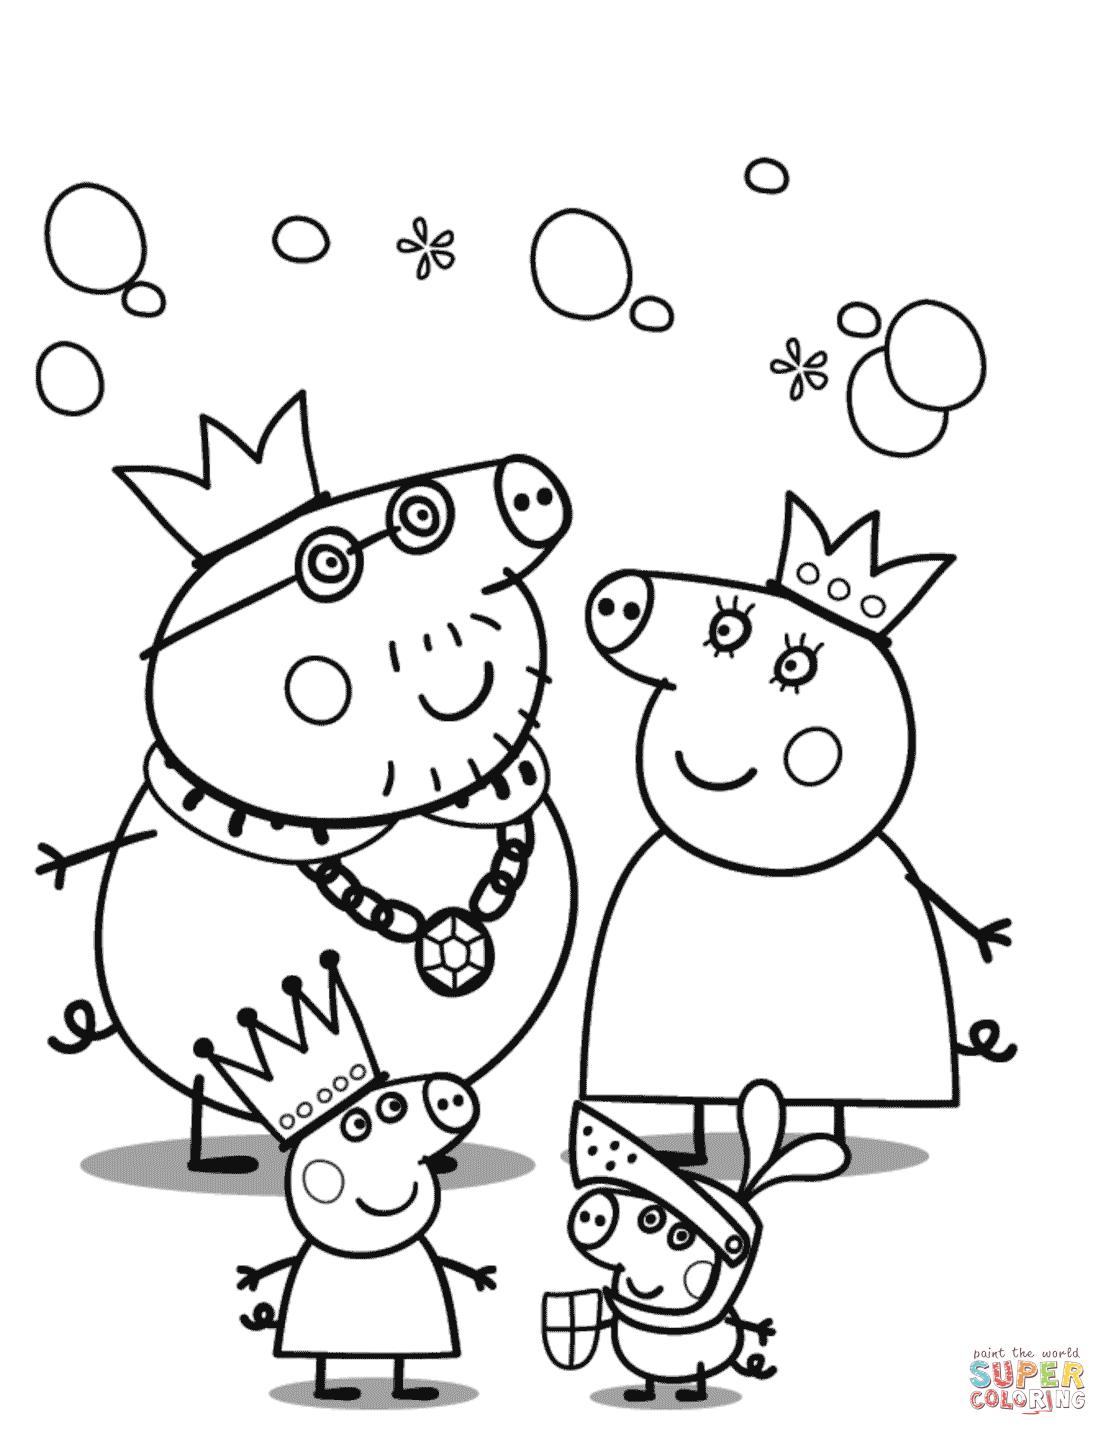 peppa pig colouring pages online peppa pig39s royal family coloring page free printable pages colouring pig peppa online